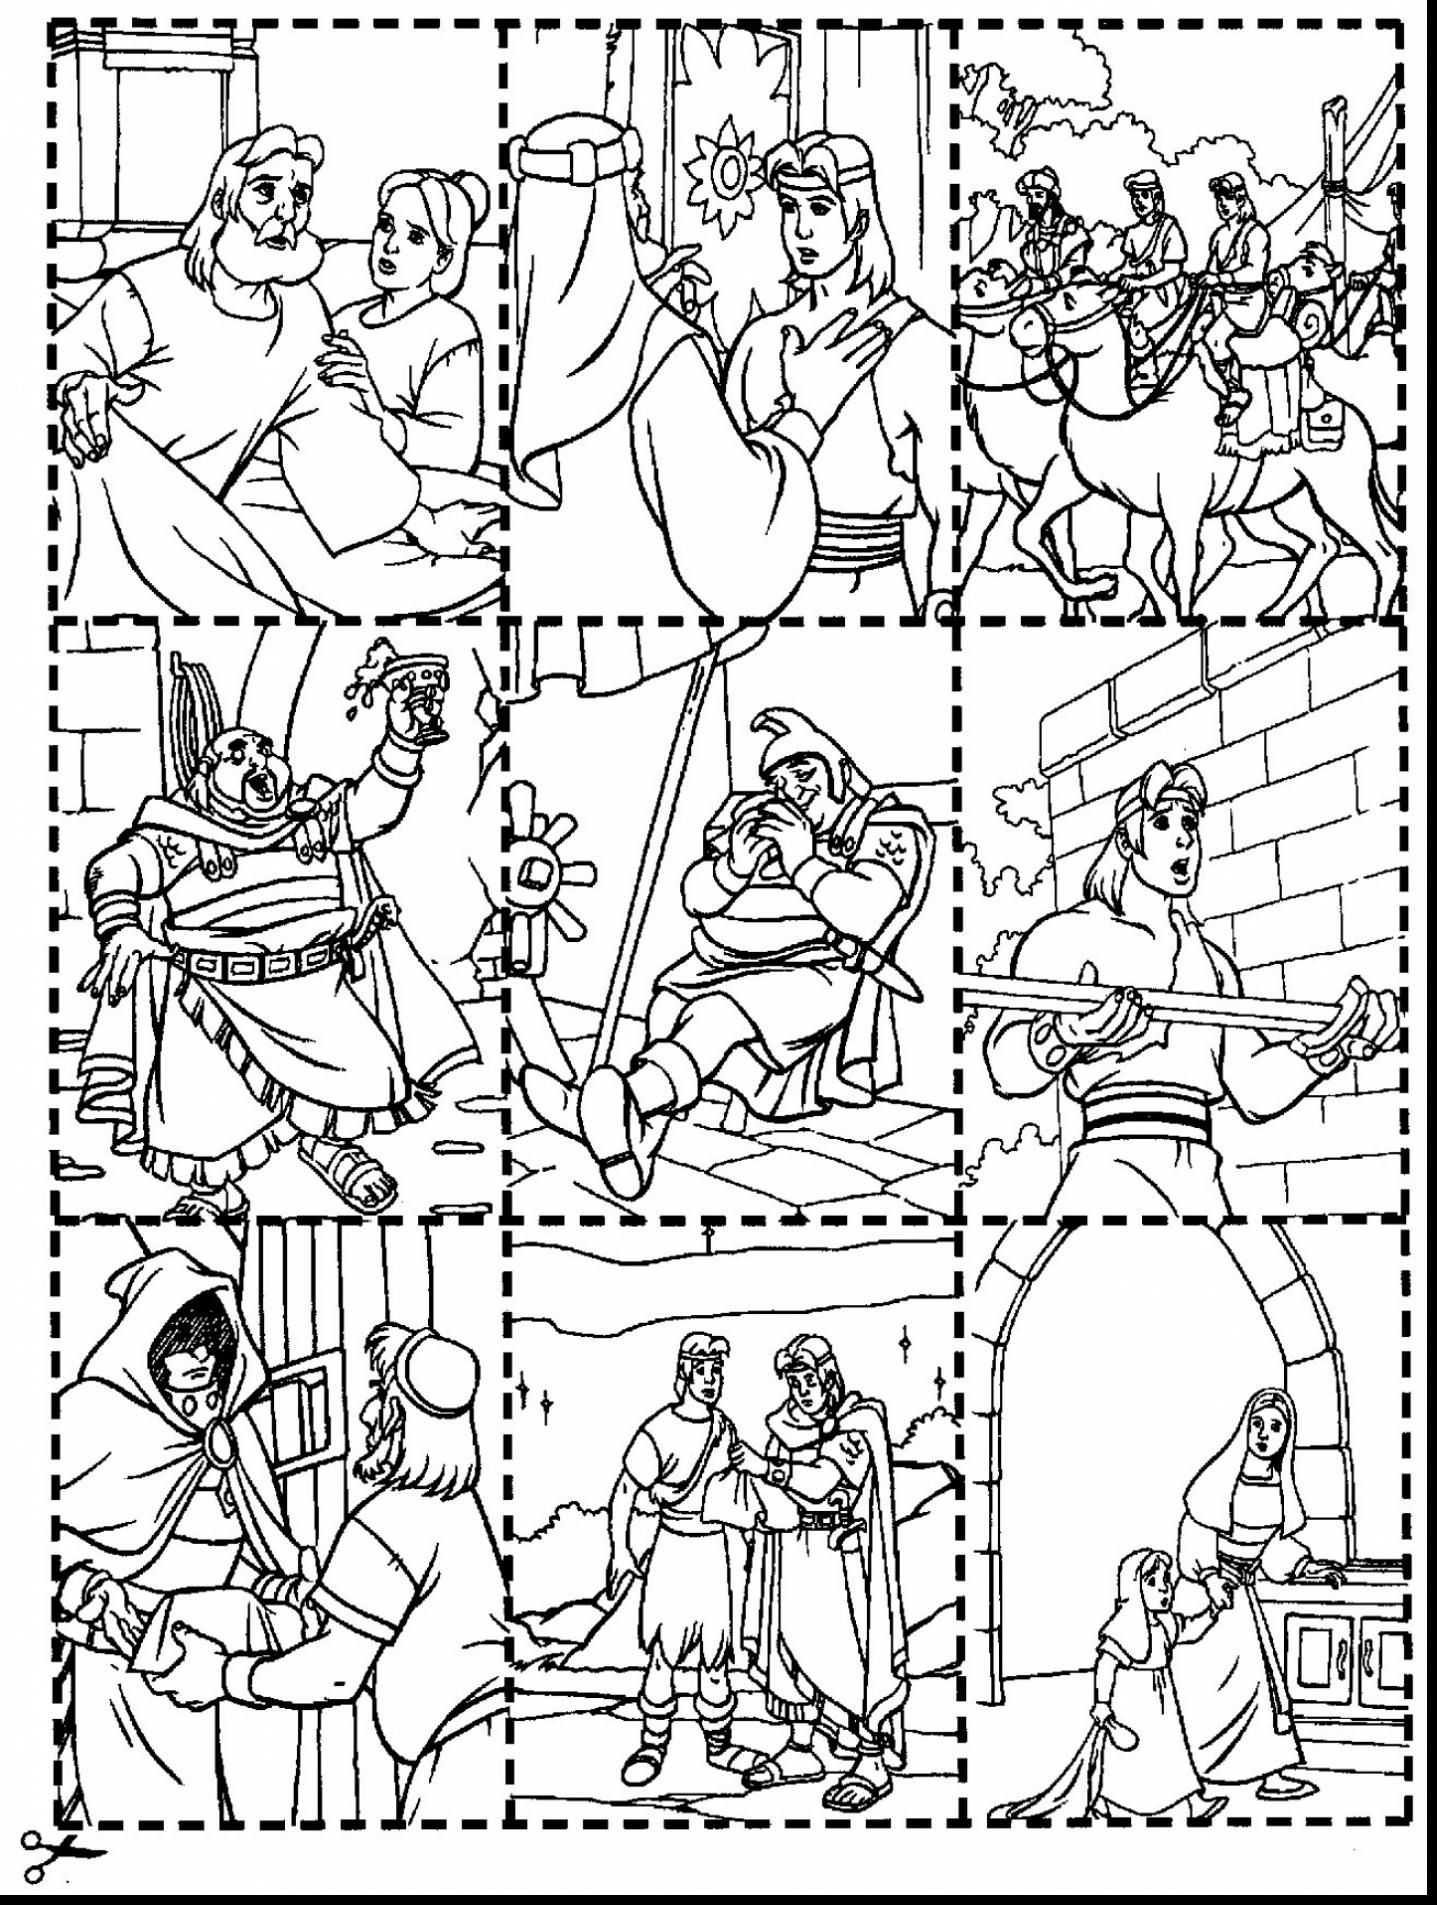 Nephi Coloring Page : nephi, coloring, Nephi, Brass, Plates, Coloring, Pages, Mormon, Sheets, Pages,